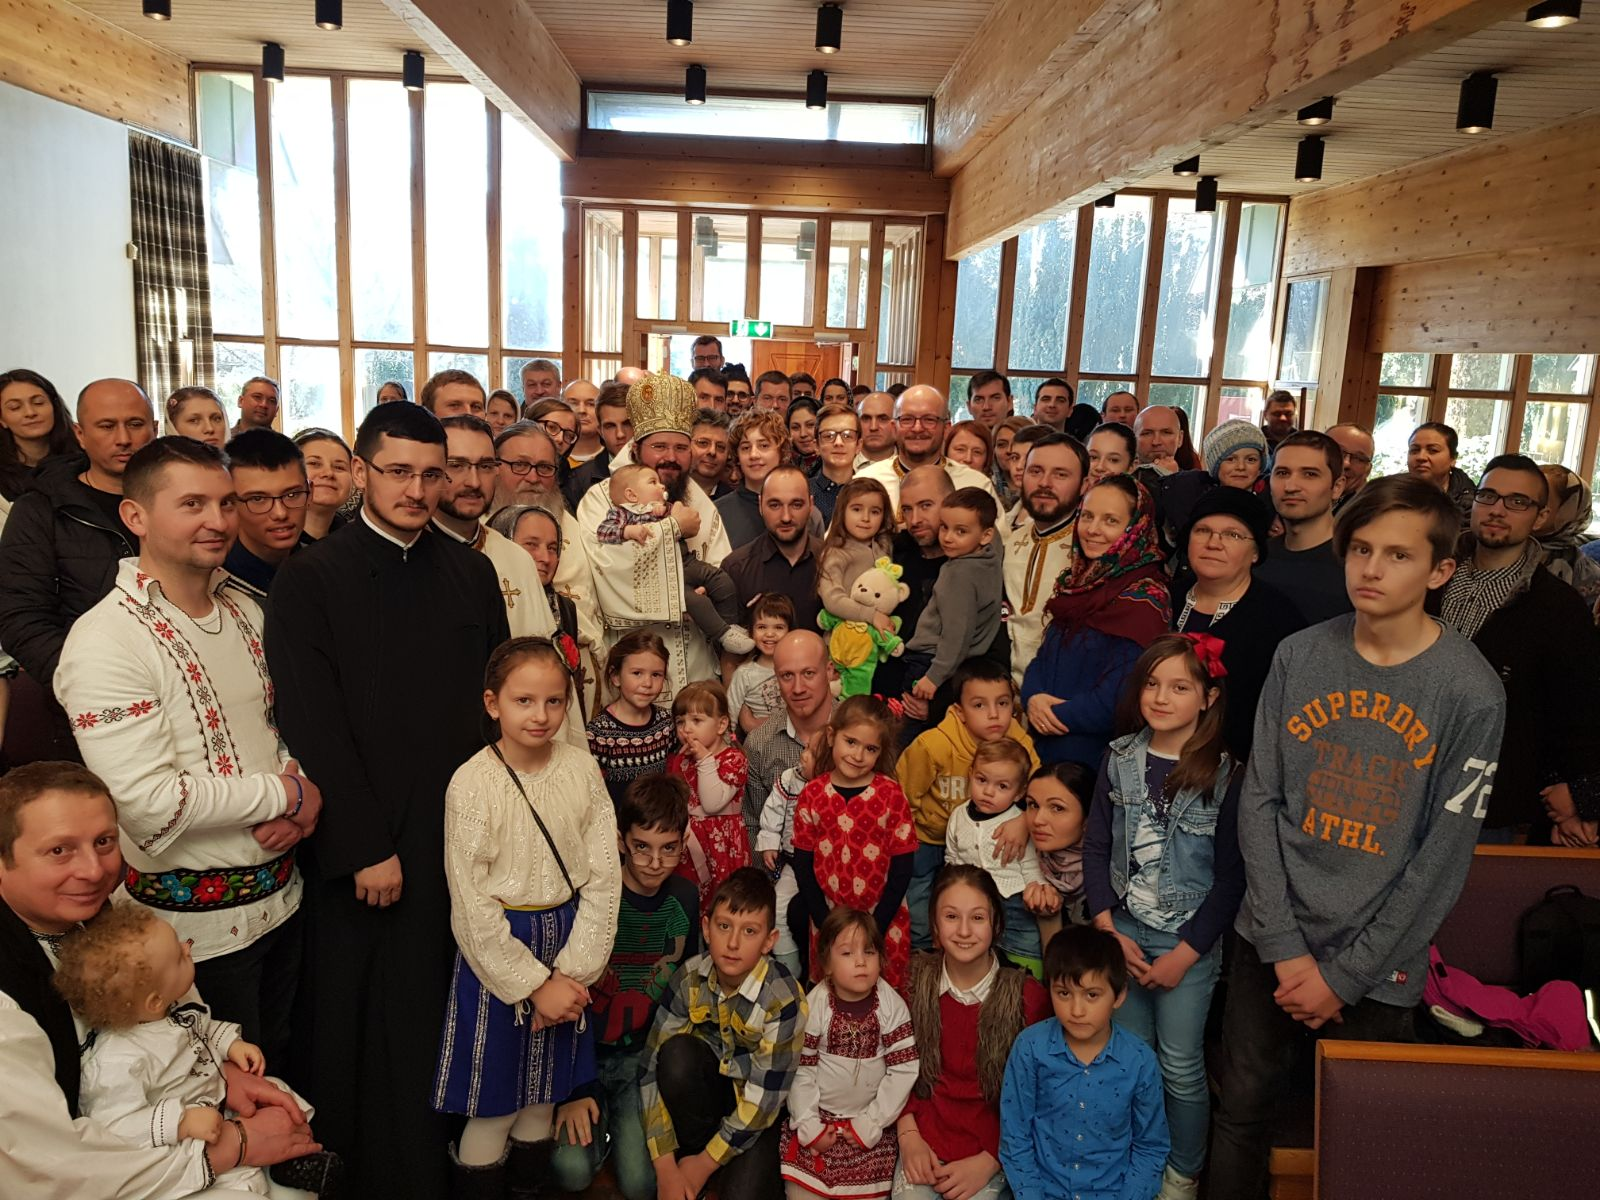 """His Grace Bishop Macarie Drăgoi at the Liturgy in Stavanger, Norway: """"When we are on the ladder of spiritual endeavors we should not look down or delay too much in the middle because it may cause us confusion or dizziness"""""""